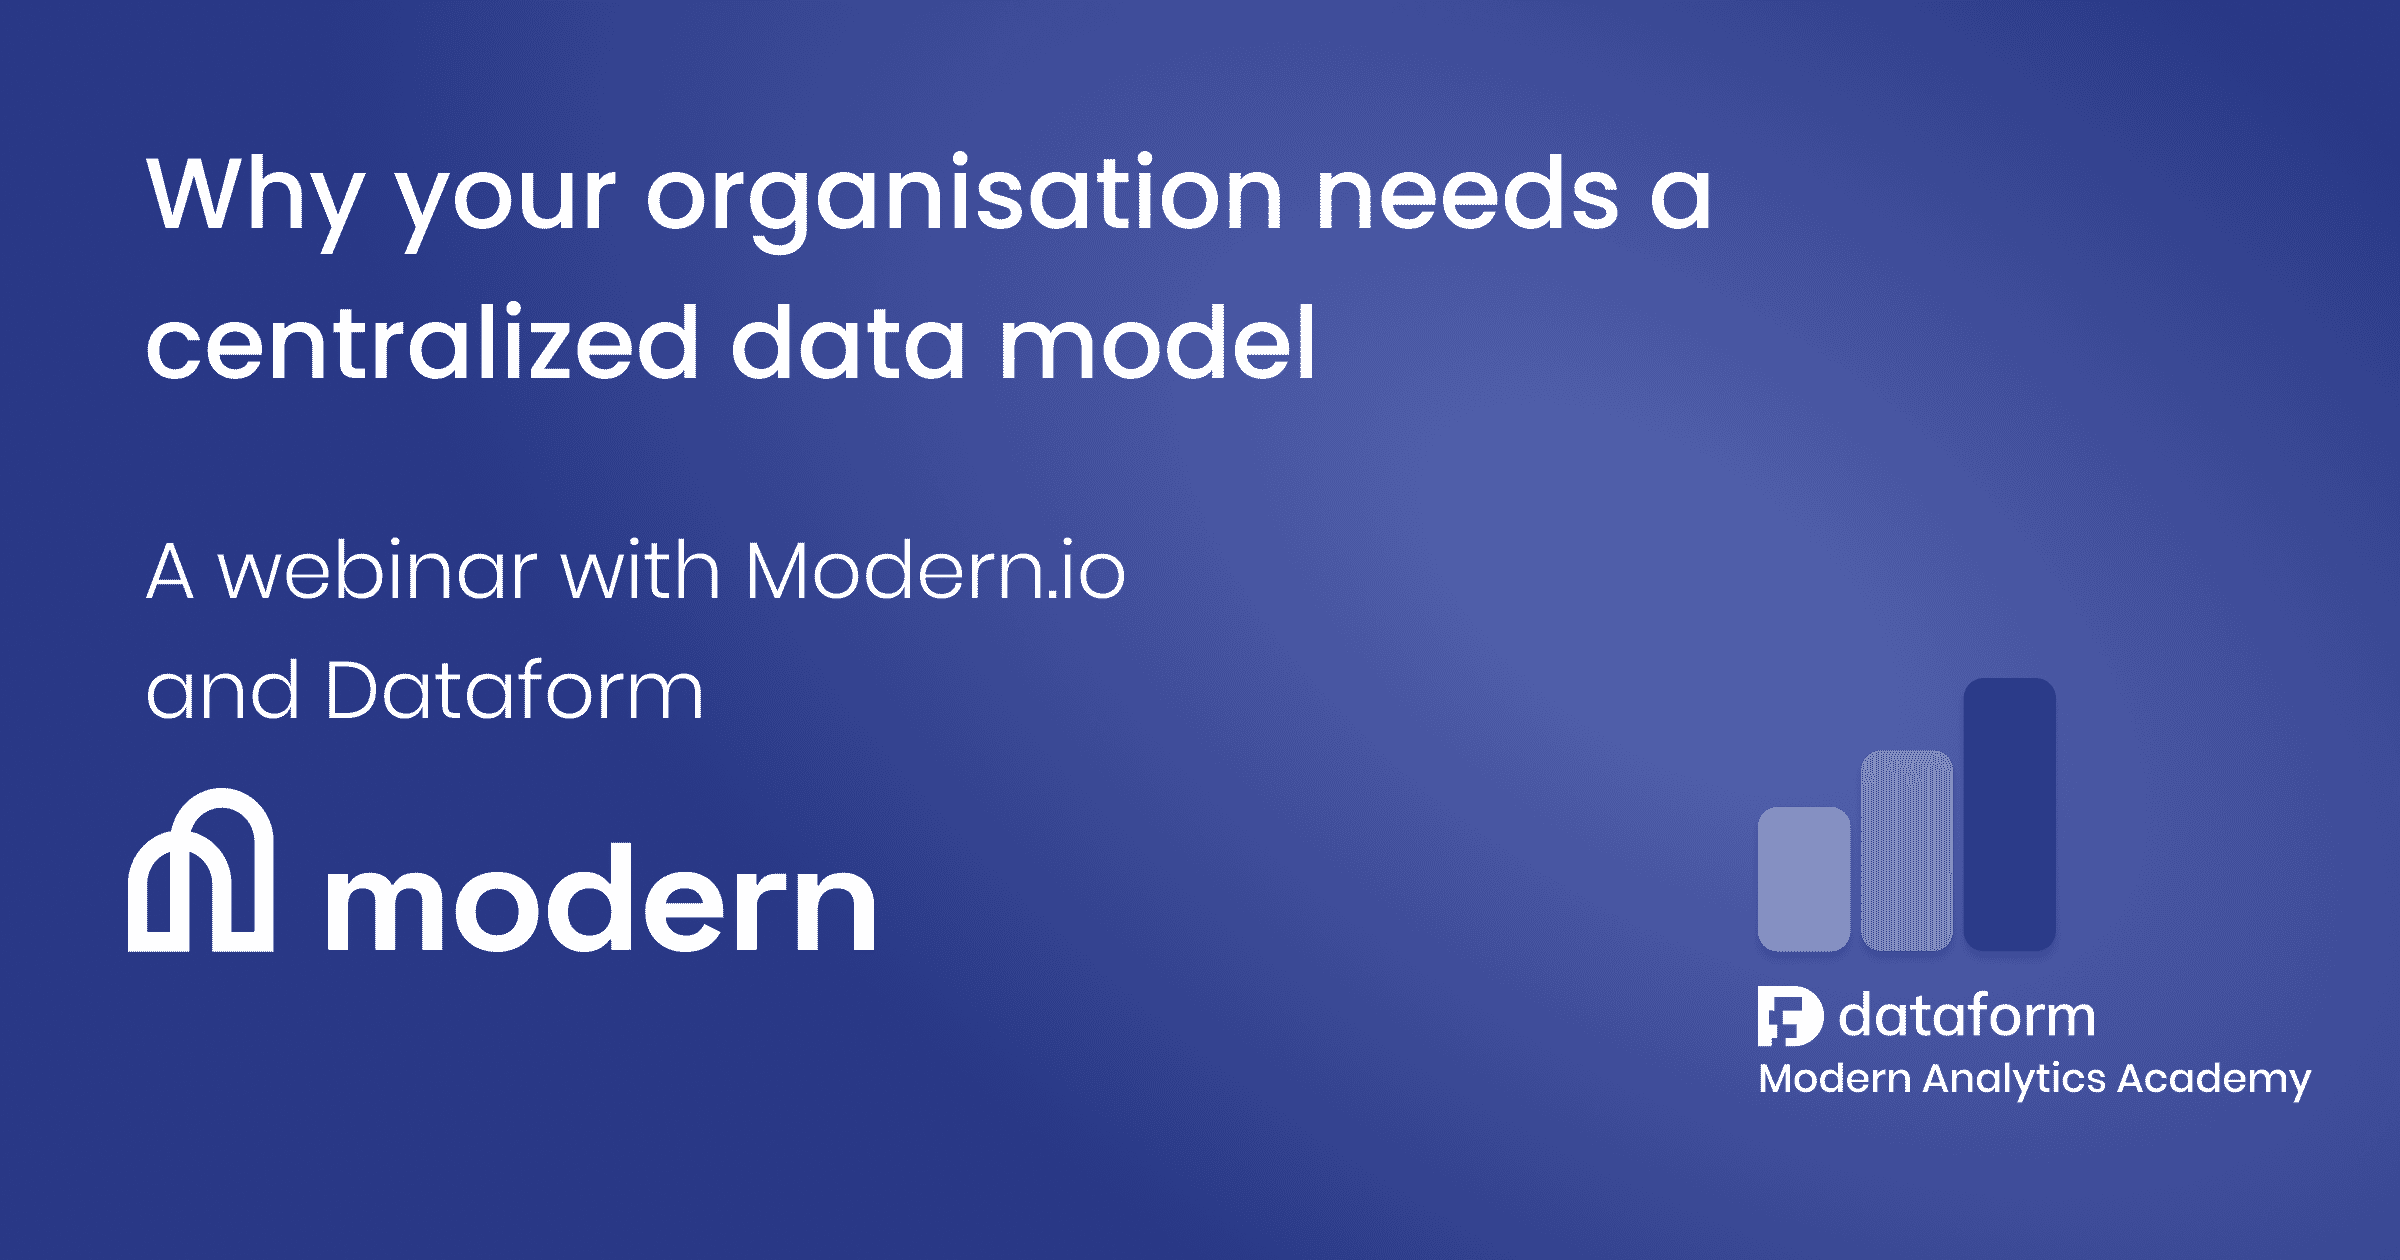 Why your organization needs a centralized data model illustration